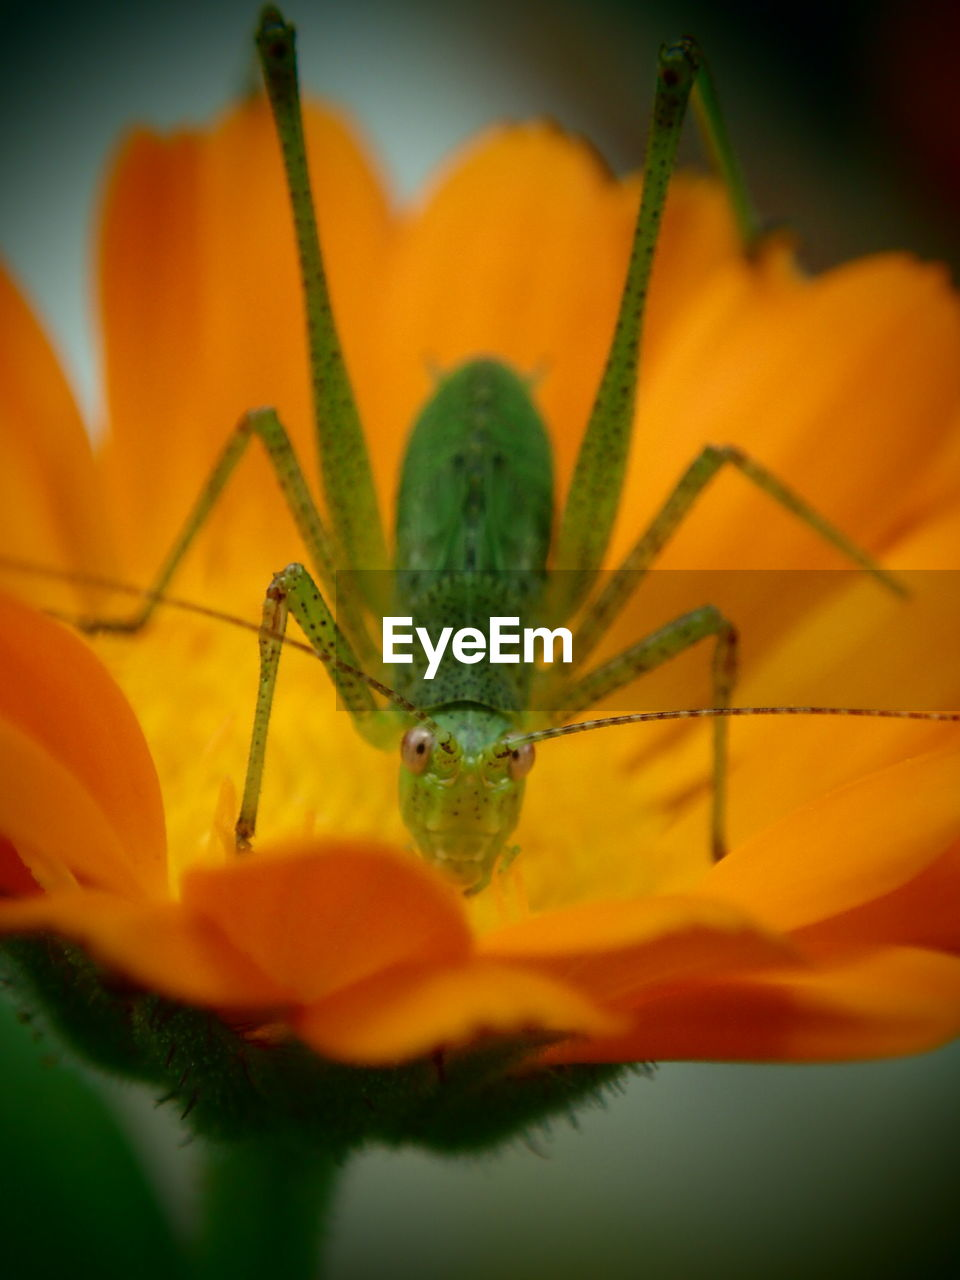 close-up, one animal, insect, animal wildlife, plant, invertebrate, animal themes, animals in the wild, animal, nature, flower, no people, flowering plant, growth, grasshopper, animal body part, freshness, beauty in nature, selective focus, green color, flower head, animal eye